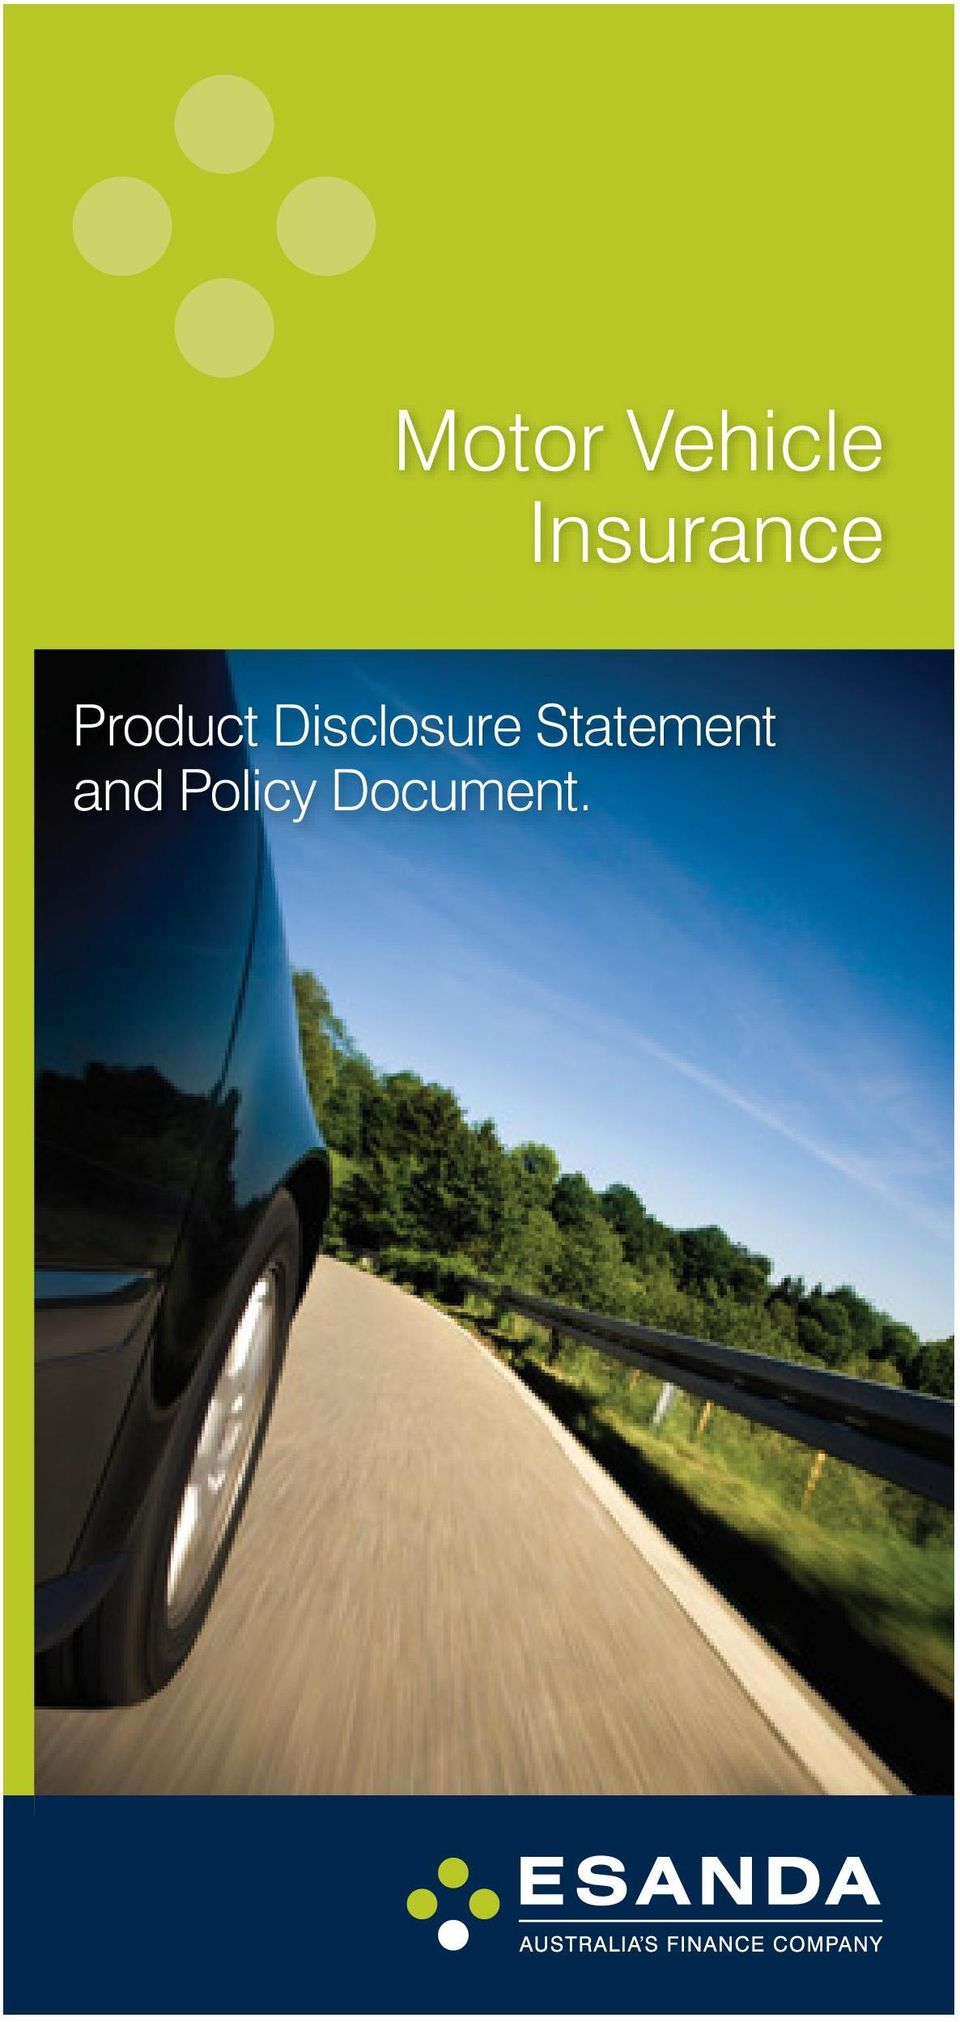 Disclosure Statement (Product